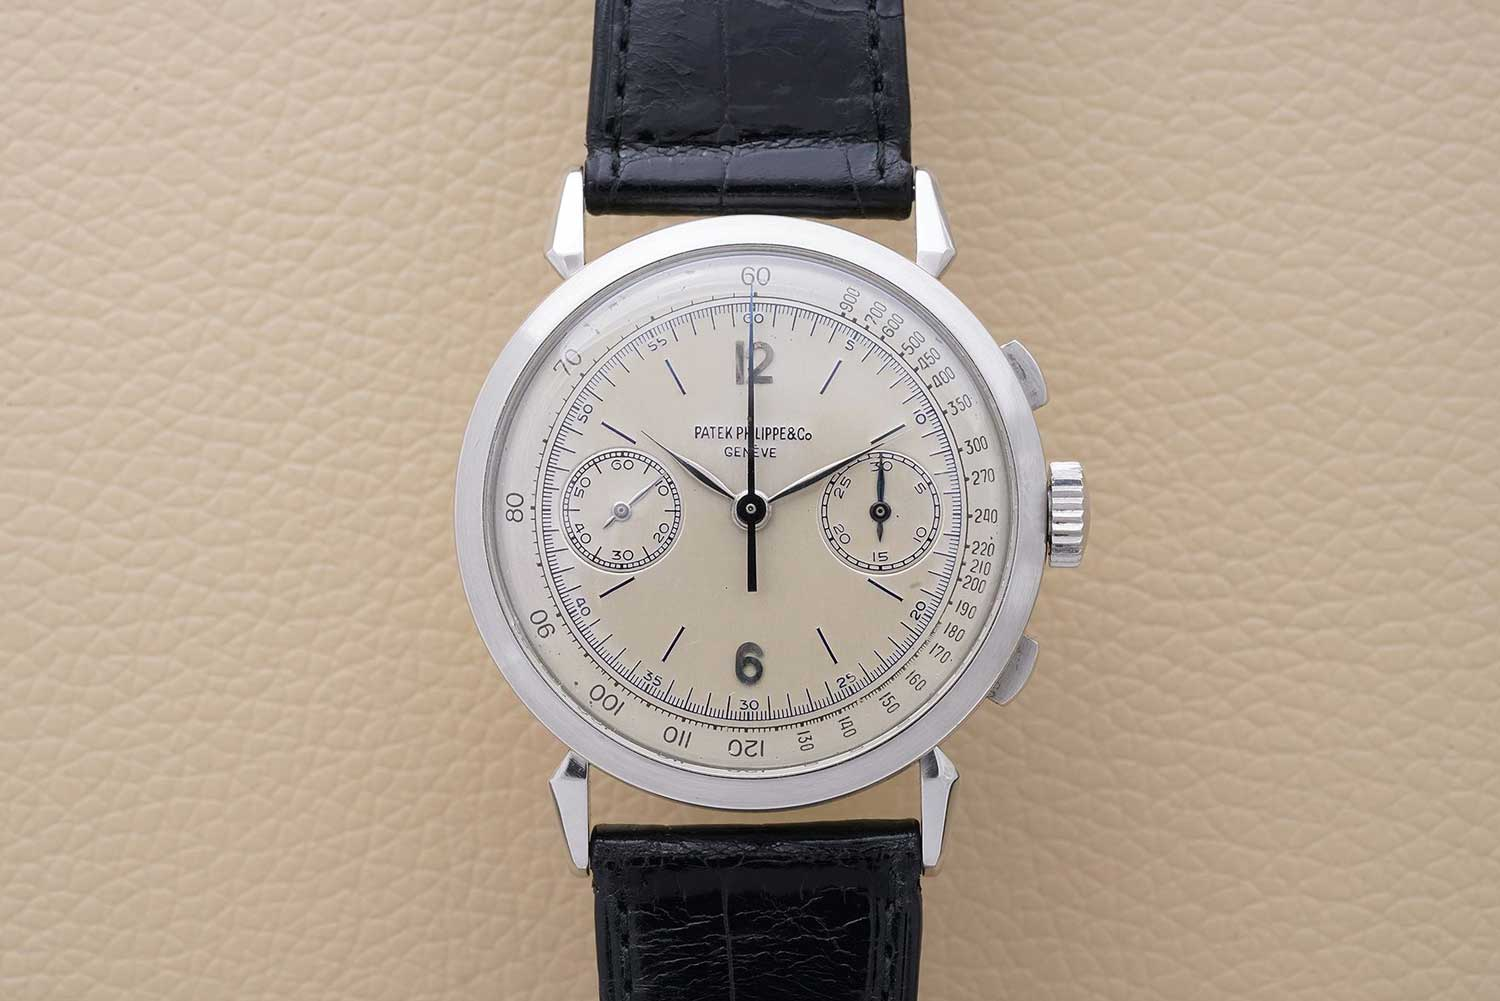 Jean-Claude Biver's platinum 1579, due to be sold with Phillips Watches (Image: PhillipsWatches.com)